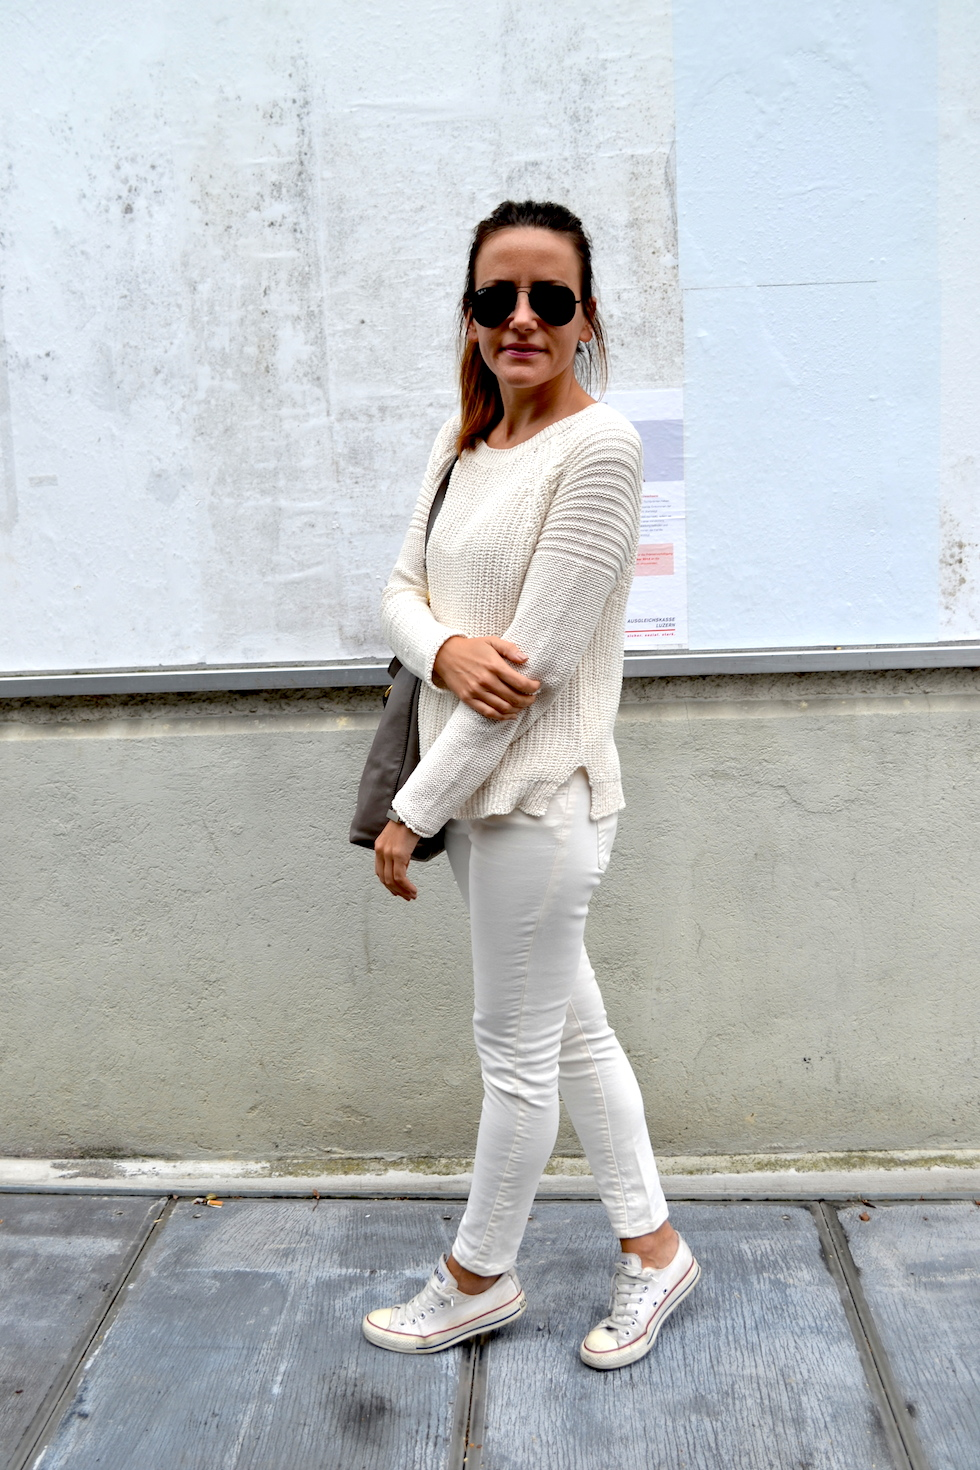 1_Weisses Outfit mekivi fashionblog herbst 14